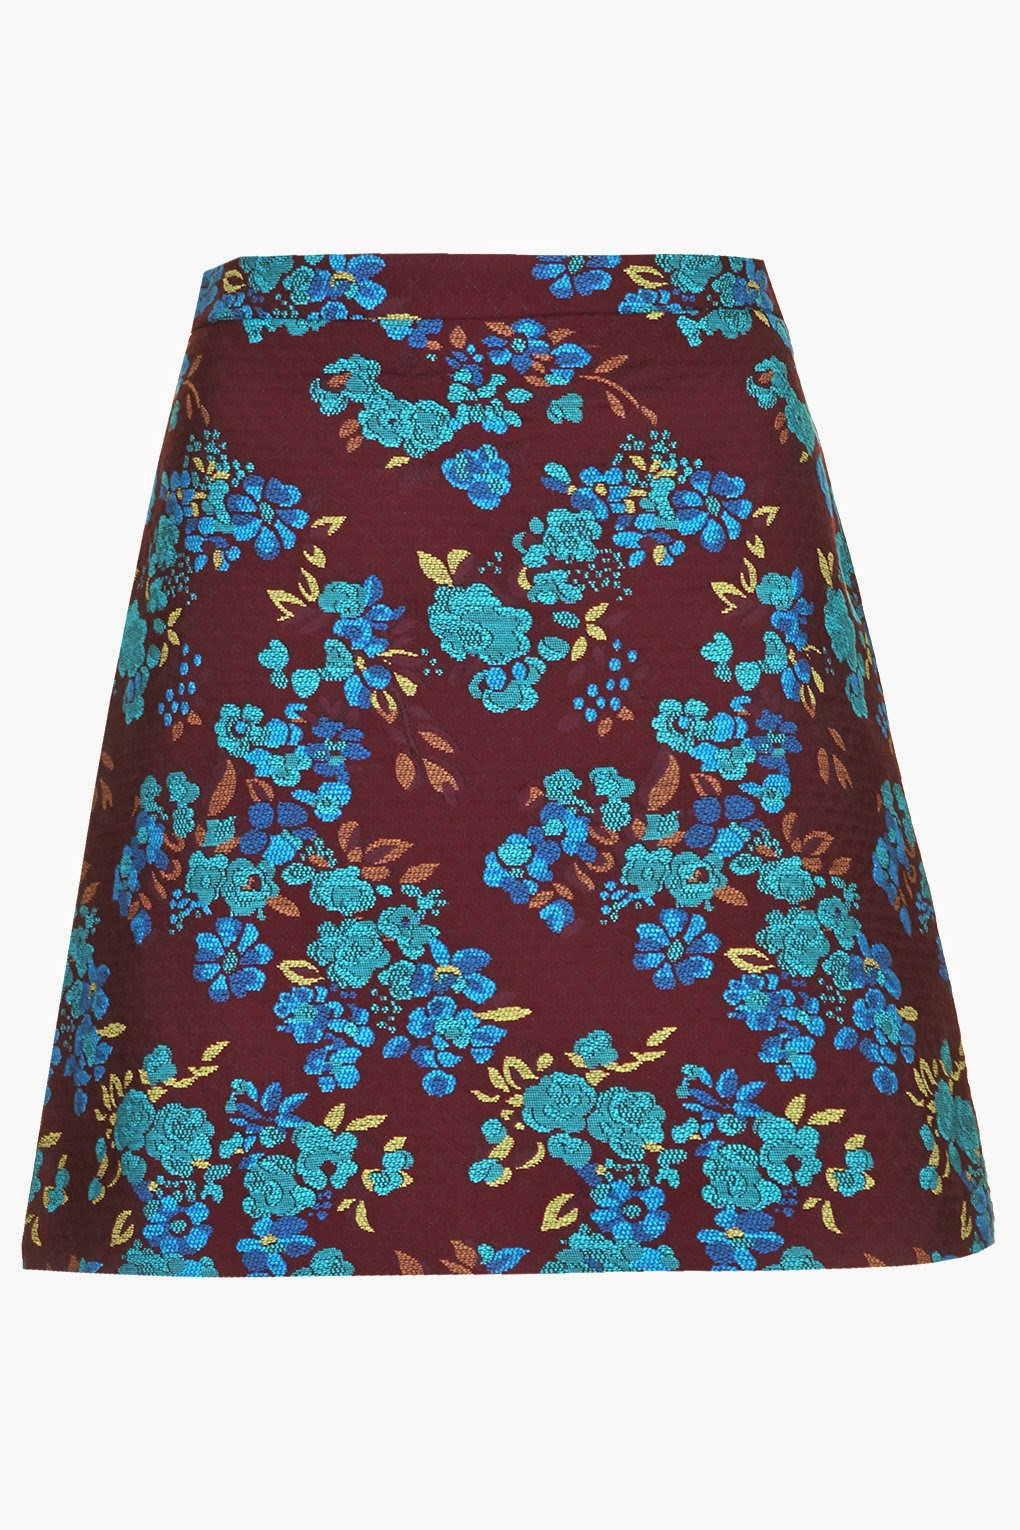 burgundy skirt with flowers